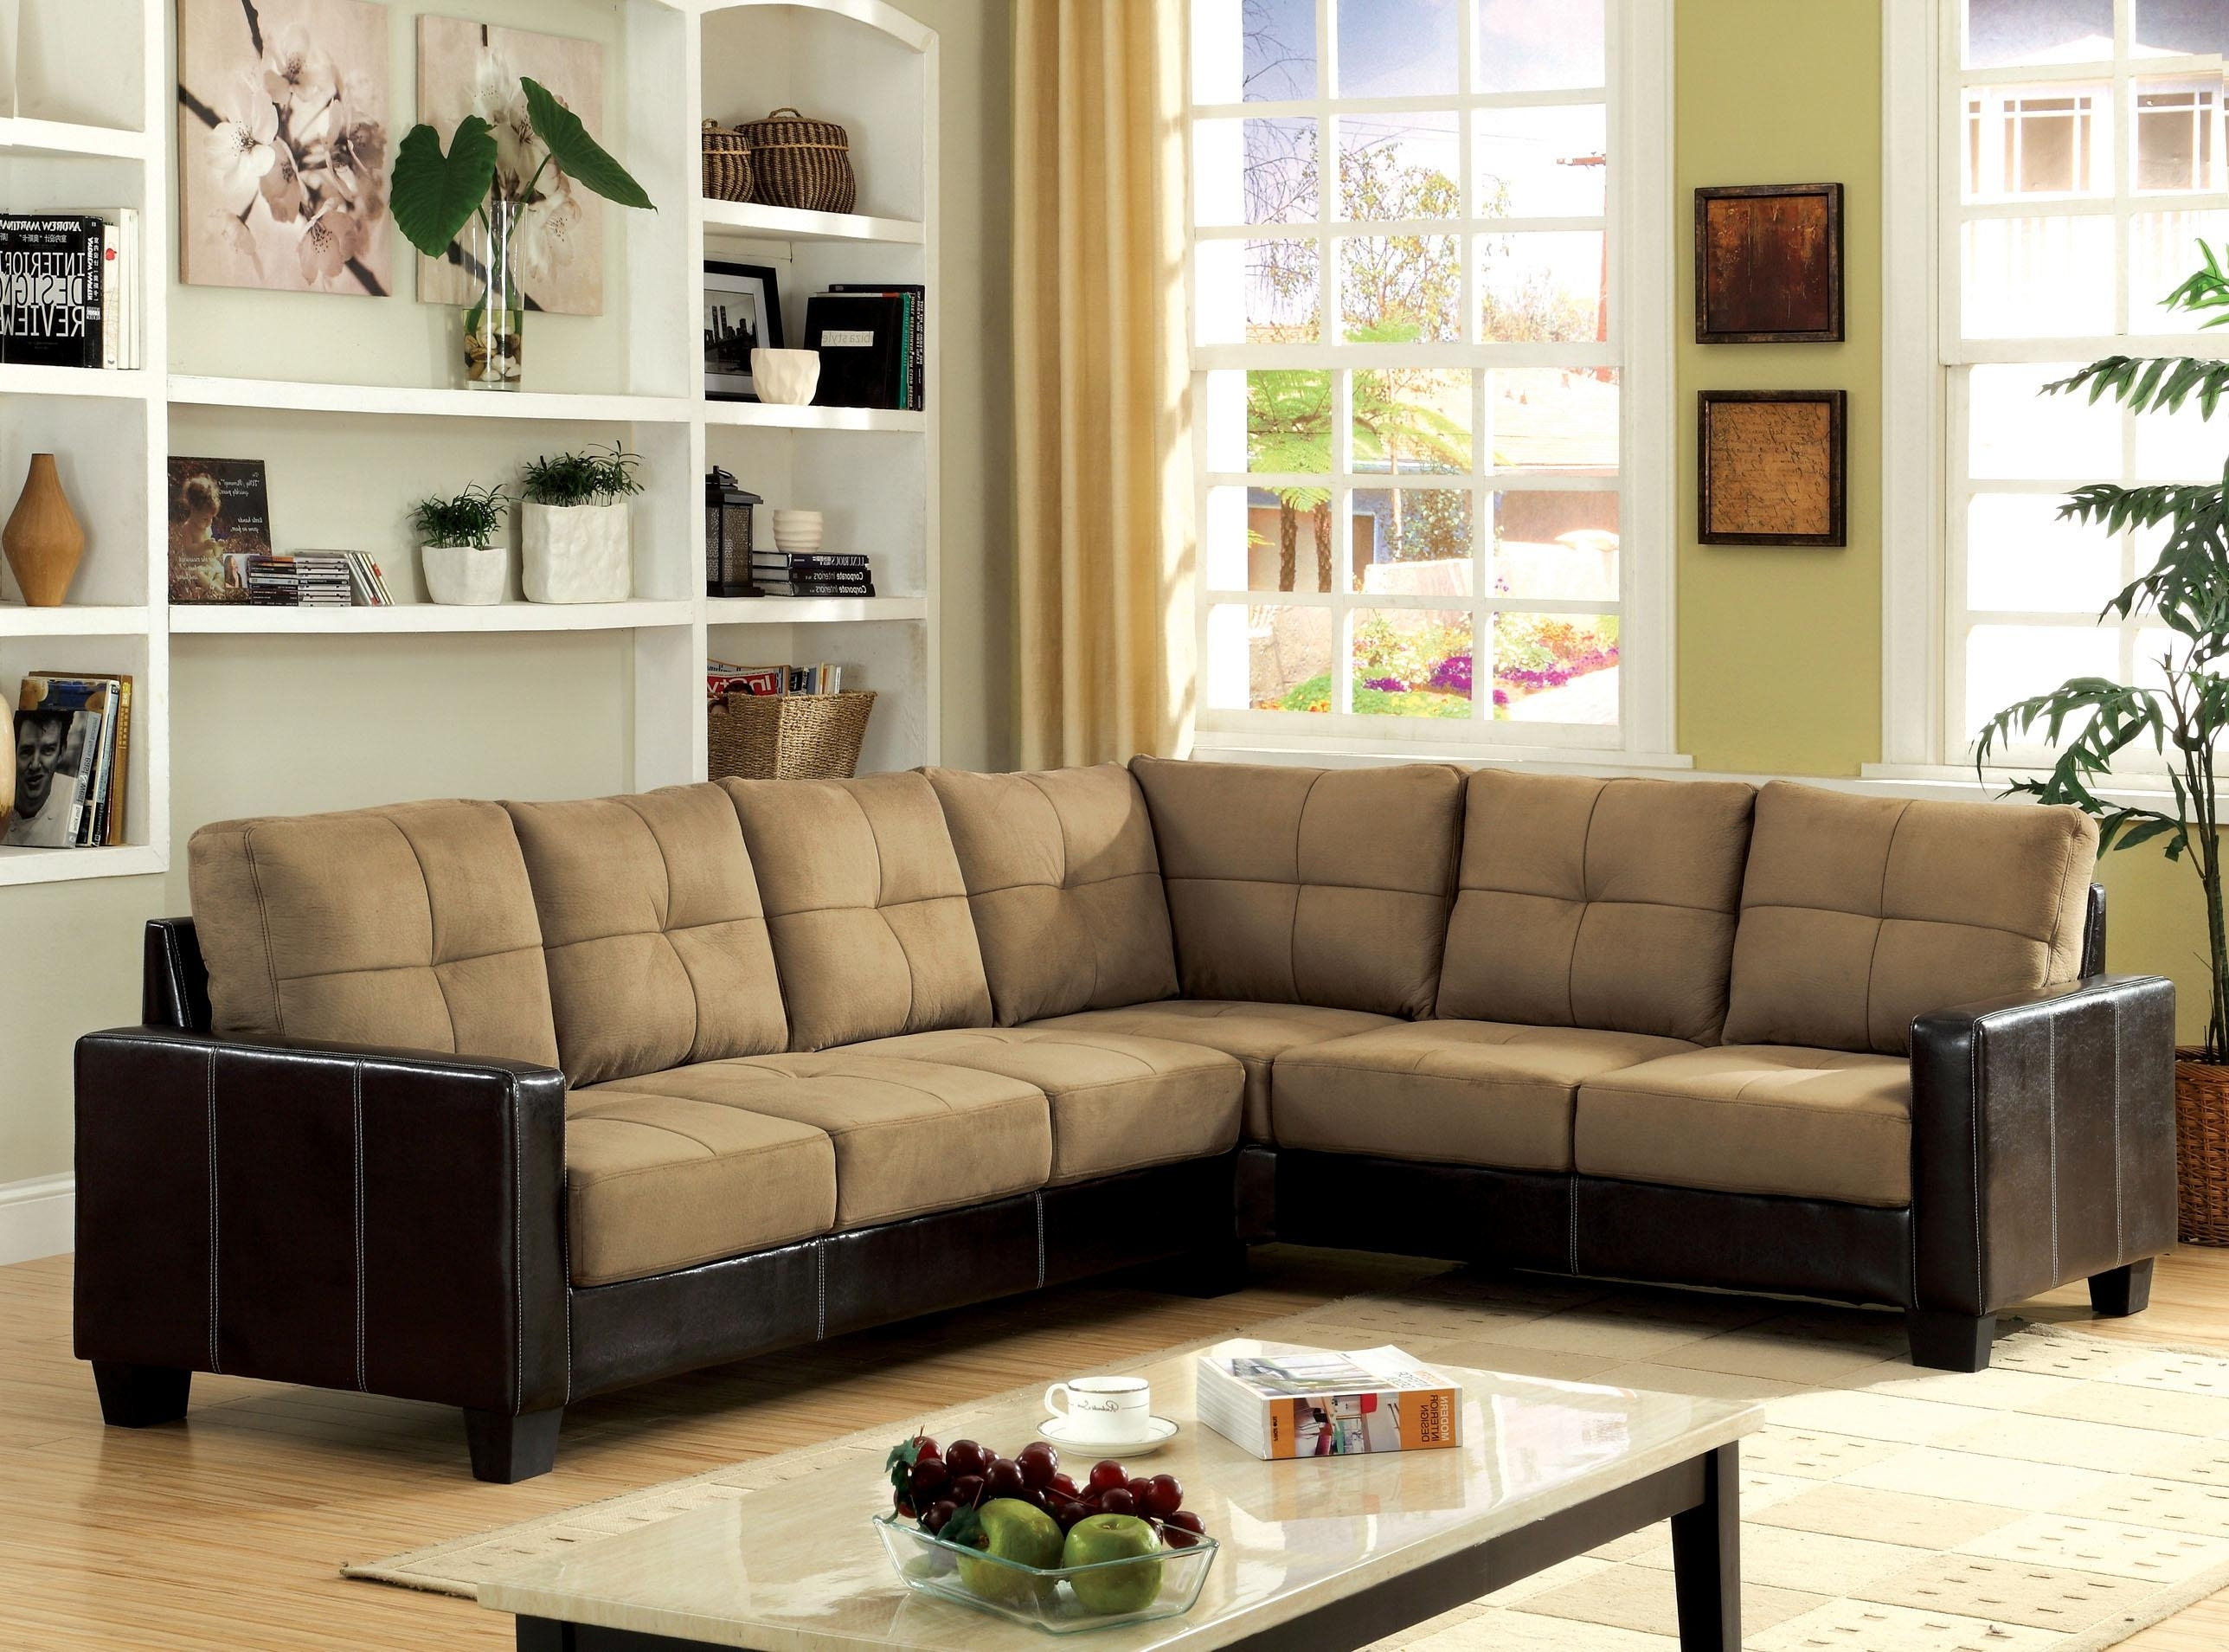 Good Sectional Sofas Jacksonville Fl 96 In Small Red Sectional Intended For 2018 Jacksonville Florida Sectional Sofas (View 13 of 15)